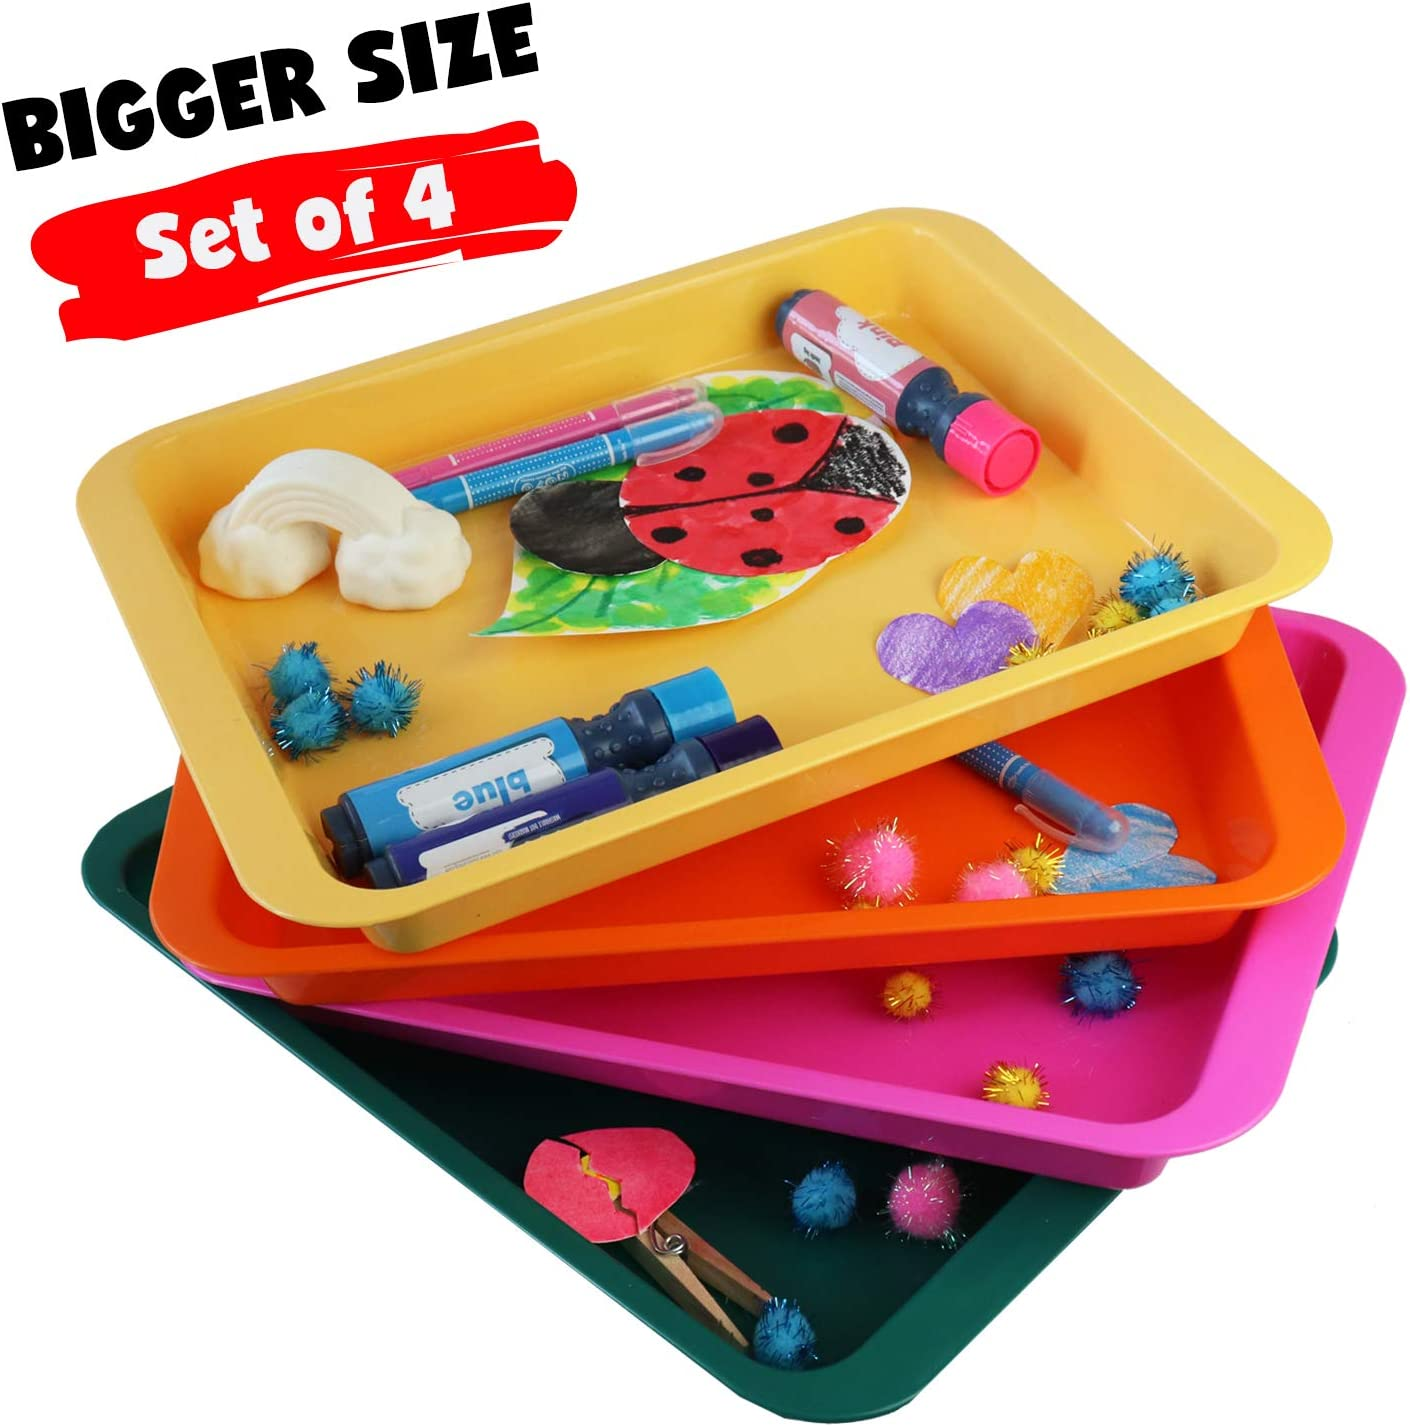 Activity Plastic Tray - Art + Crafts Organizer Tray, Serving Tray, Great for Crafts, Beads, Orbeez Water Beads, Painting (Set of 4 Colors - Pink, Yellow, Green, Orange)